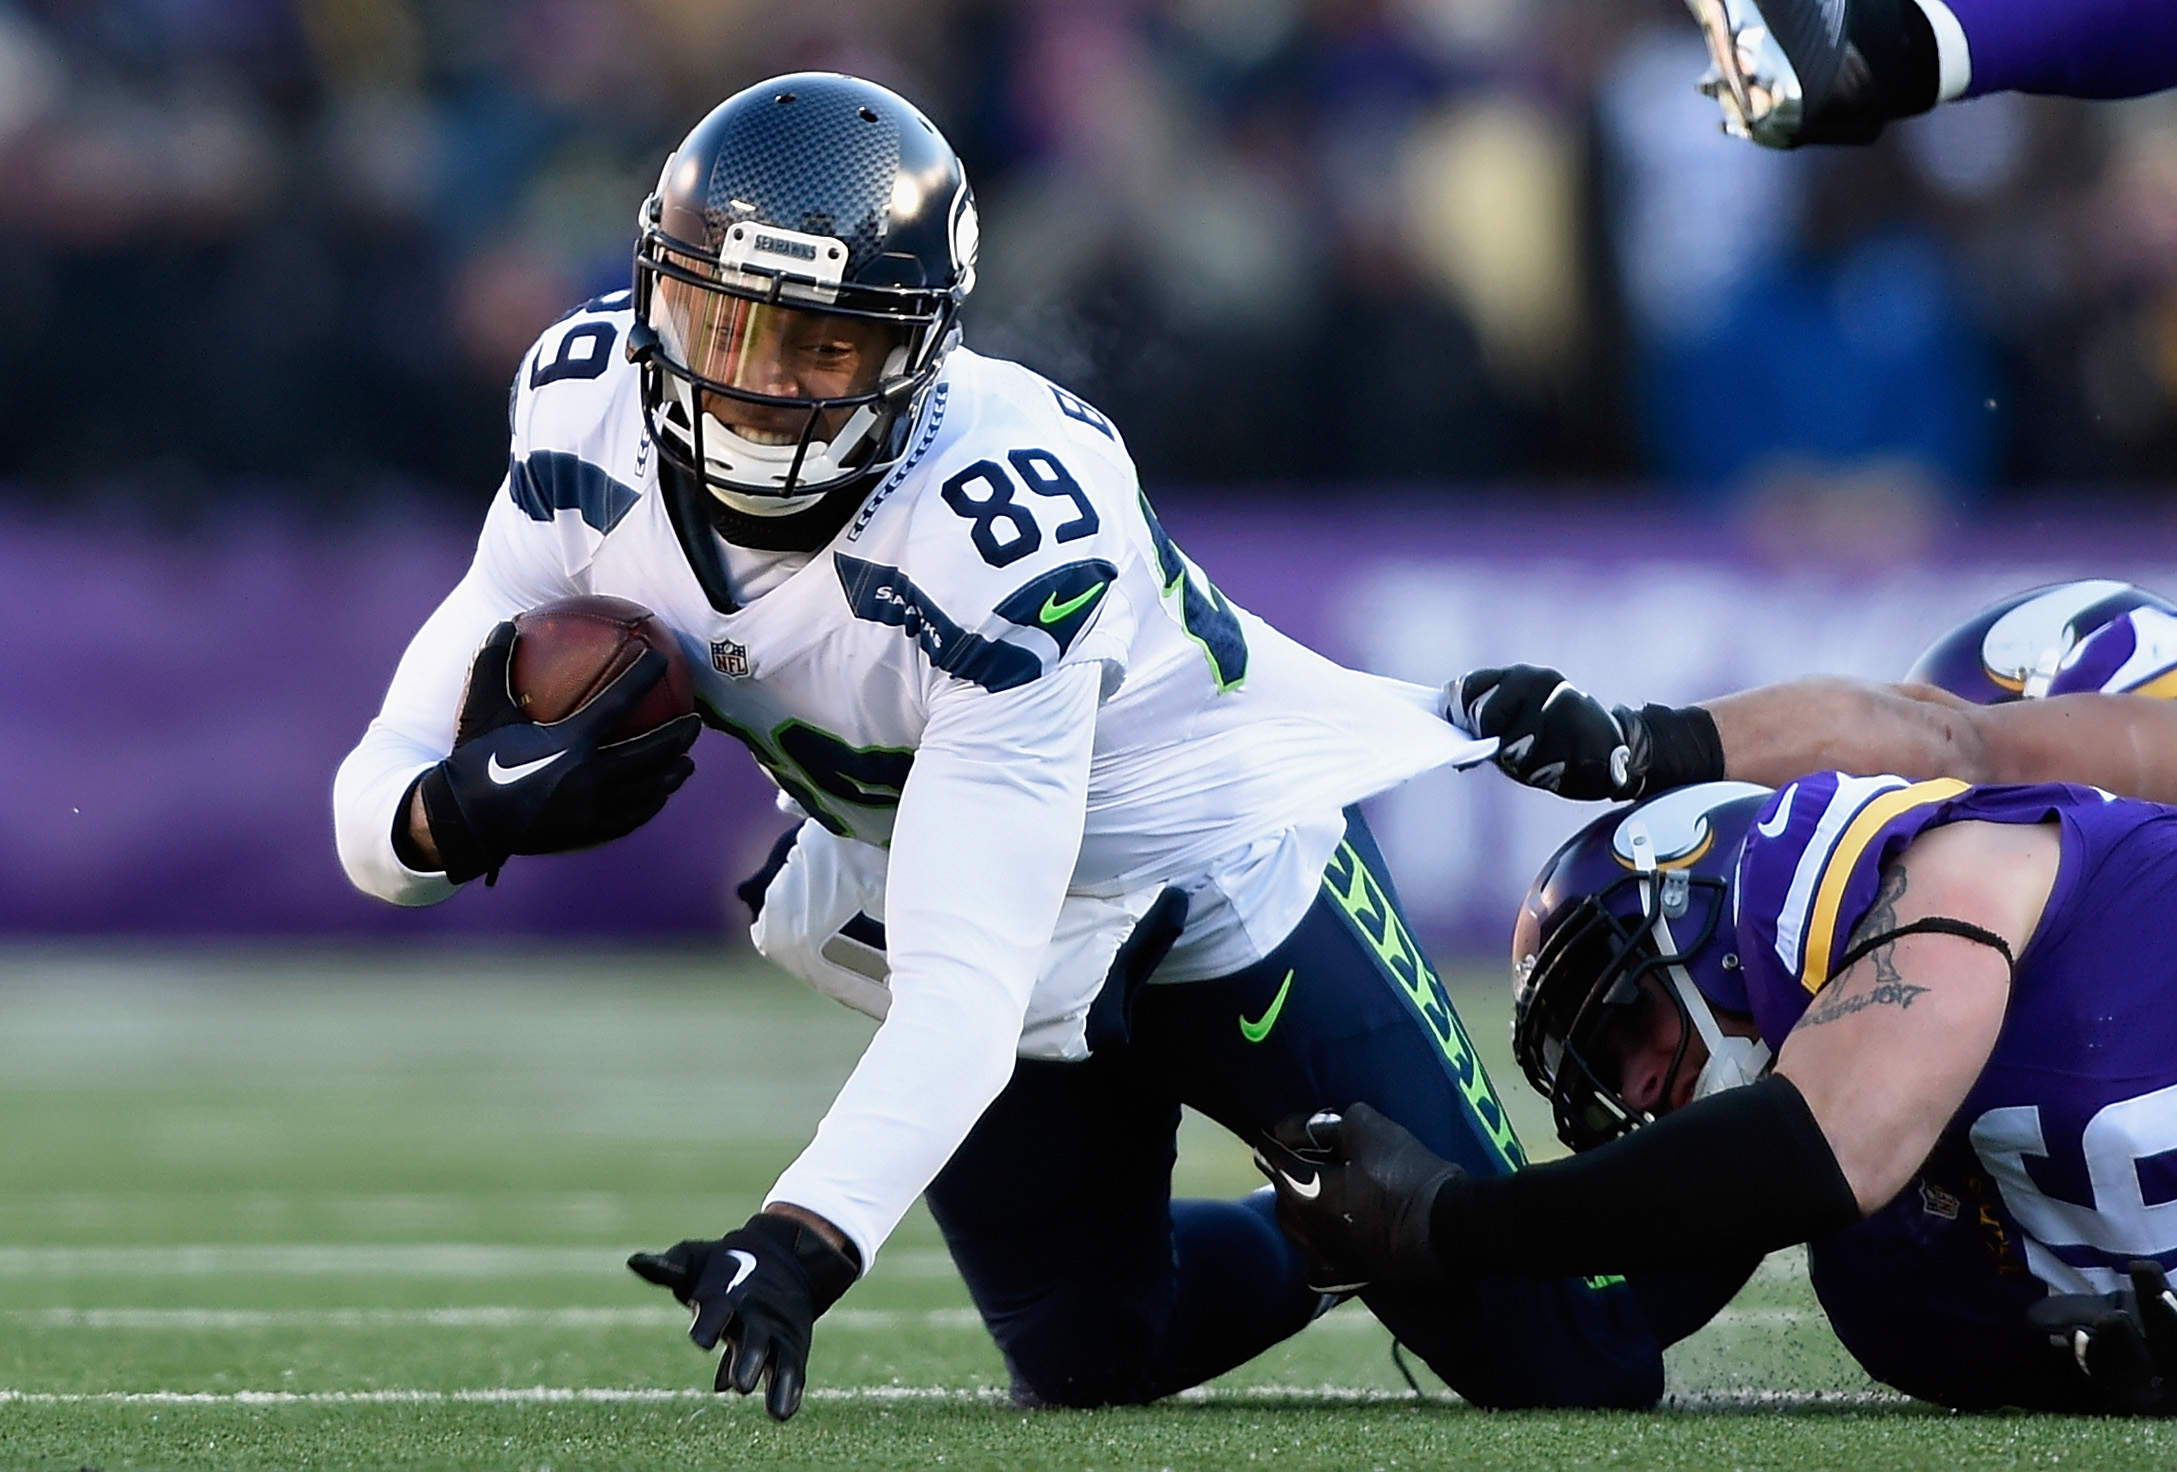 Seahawks are very different teams from quarter to quarter